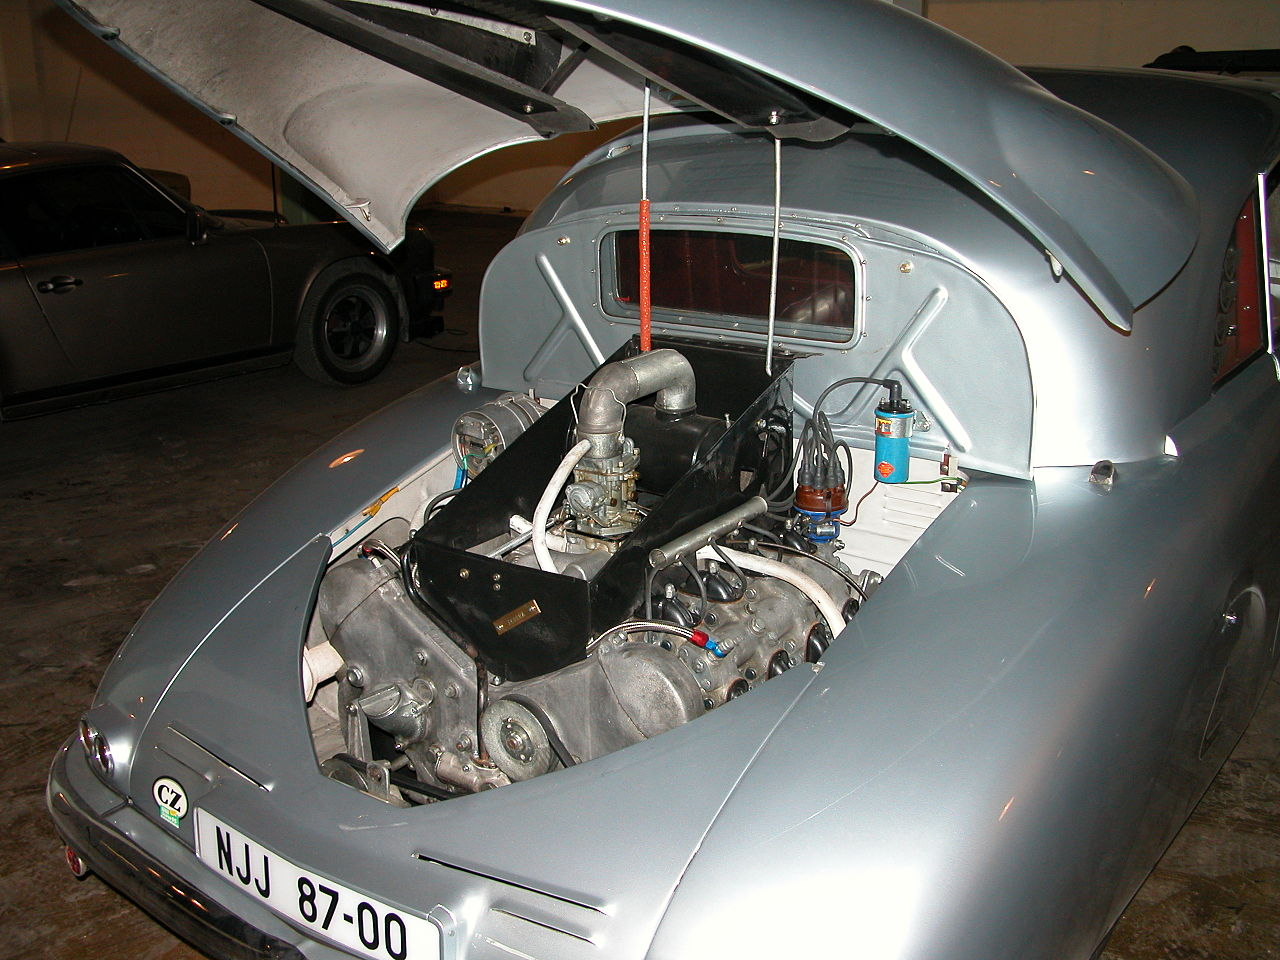 The rear mounted alloy V8 engine of the Tatra T87 is a more impressive sight than one gets when opening the engine bay of a Volkswagen. This car is in the Lane Motor Museum. (Picture courtesy wikimedia).